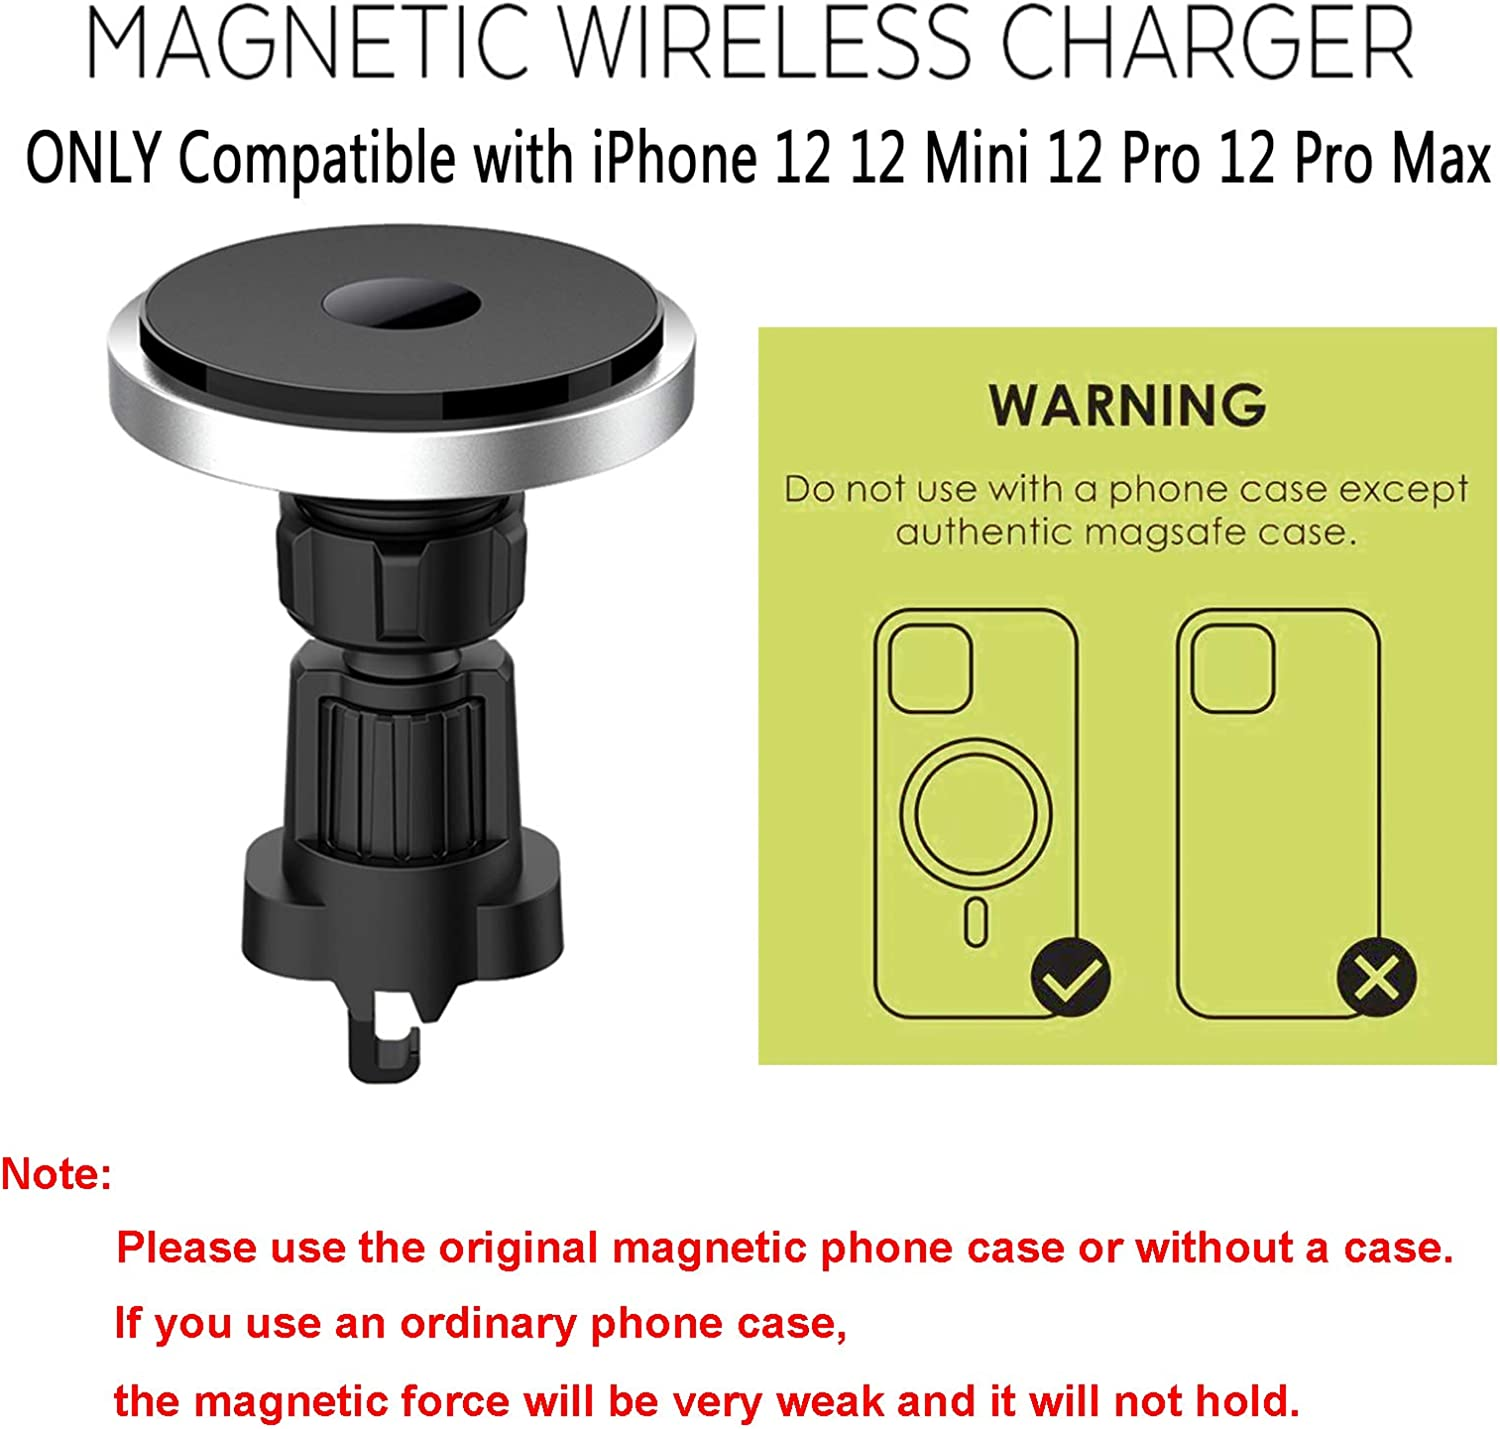 Magnetic Mag-Safe Car Mount Air Vent Mount Car Phone Holder Compatible with iPhone 12//12 Mini//12 Pro//12 Pro Max Cell Phone Fast Charger Magnetic Wireless Car Charger Mount